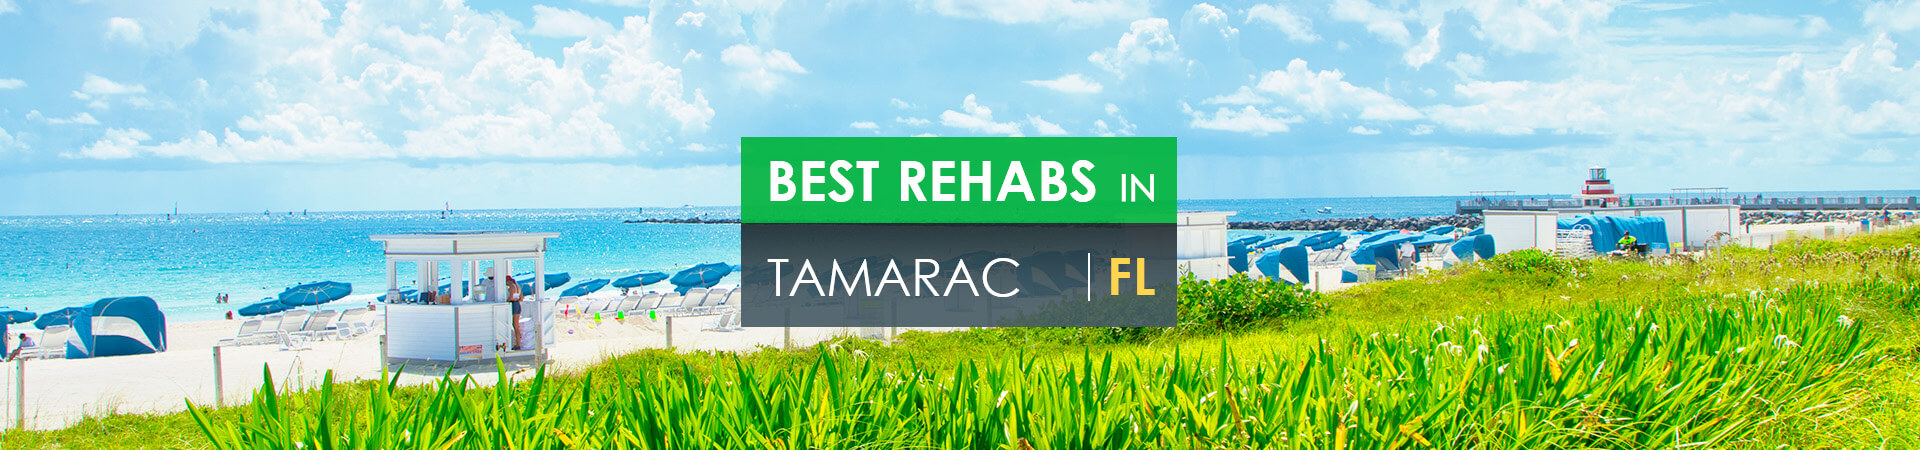 Best rehabs in Tamarac, FL